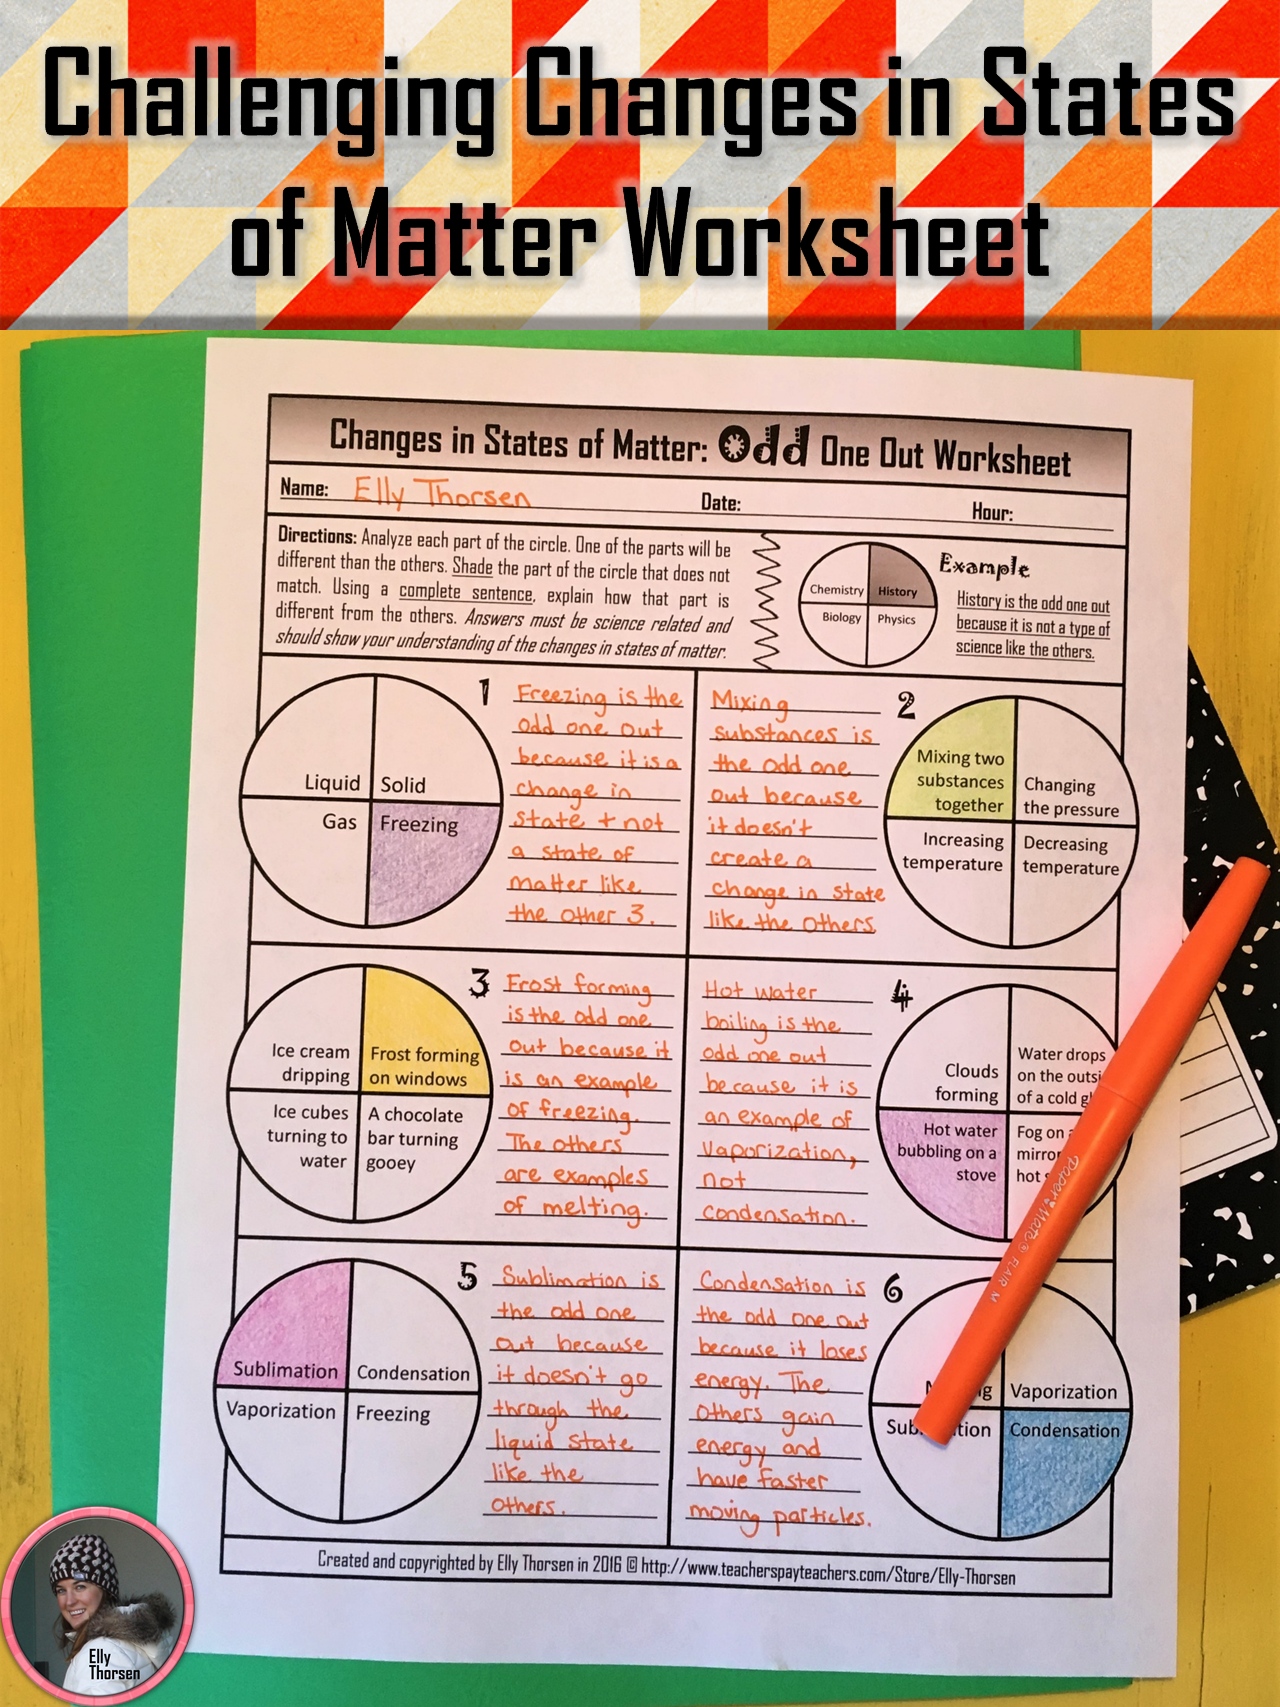 worksheet States Of Matter Worksheet High School changes in states of matter odd one out worksheet worksheets worksheet